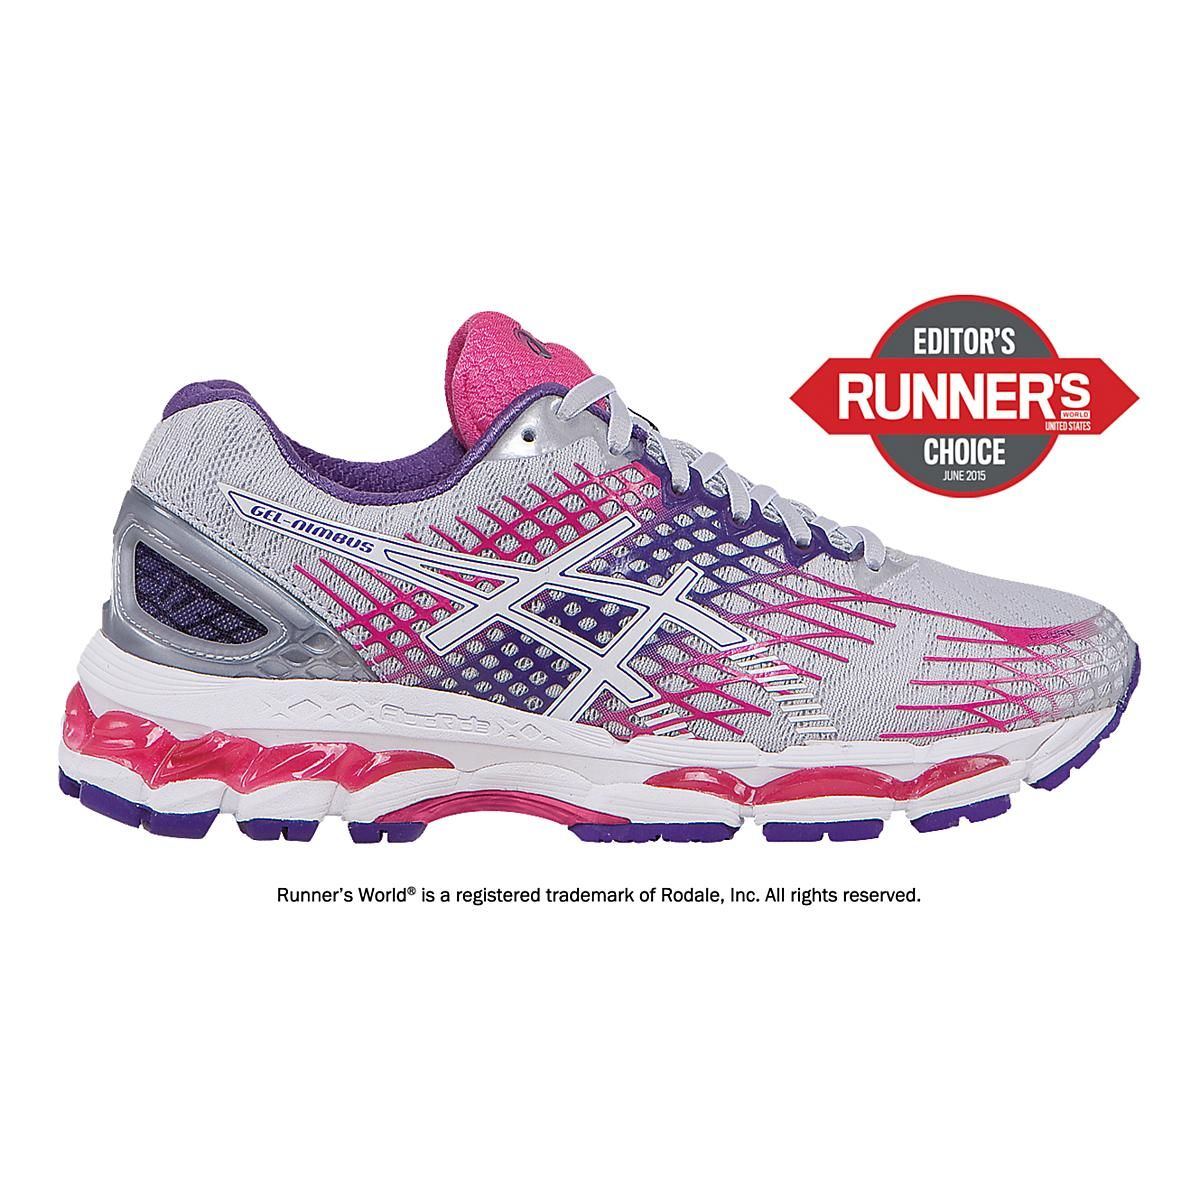 Women's GEL-Nimbus 17 | Asics running shoes, Asics women ...